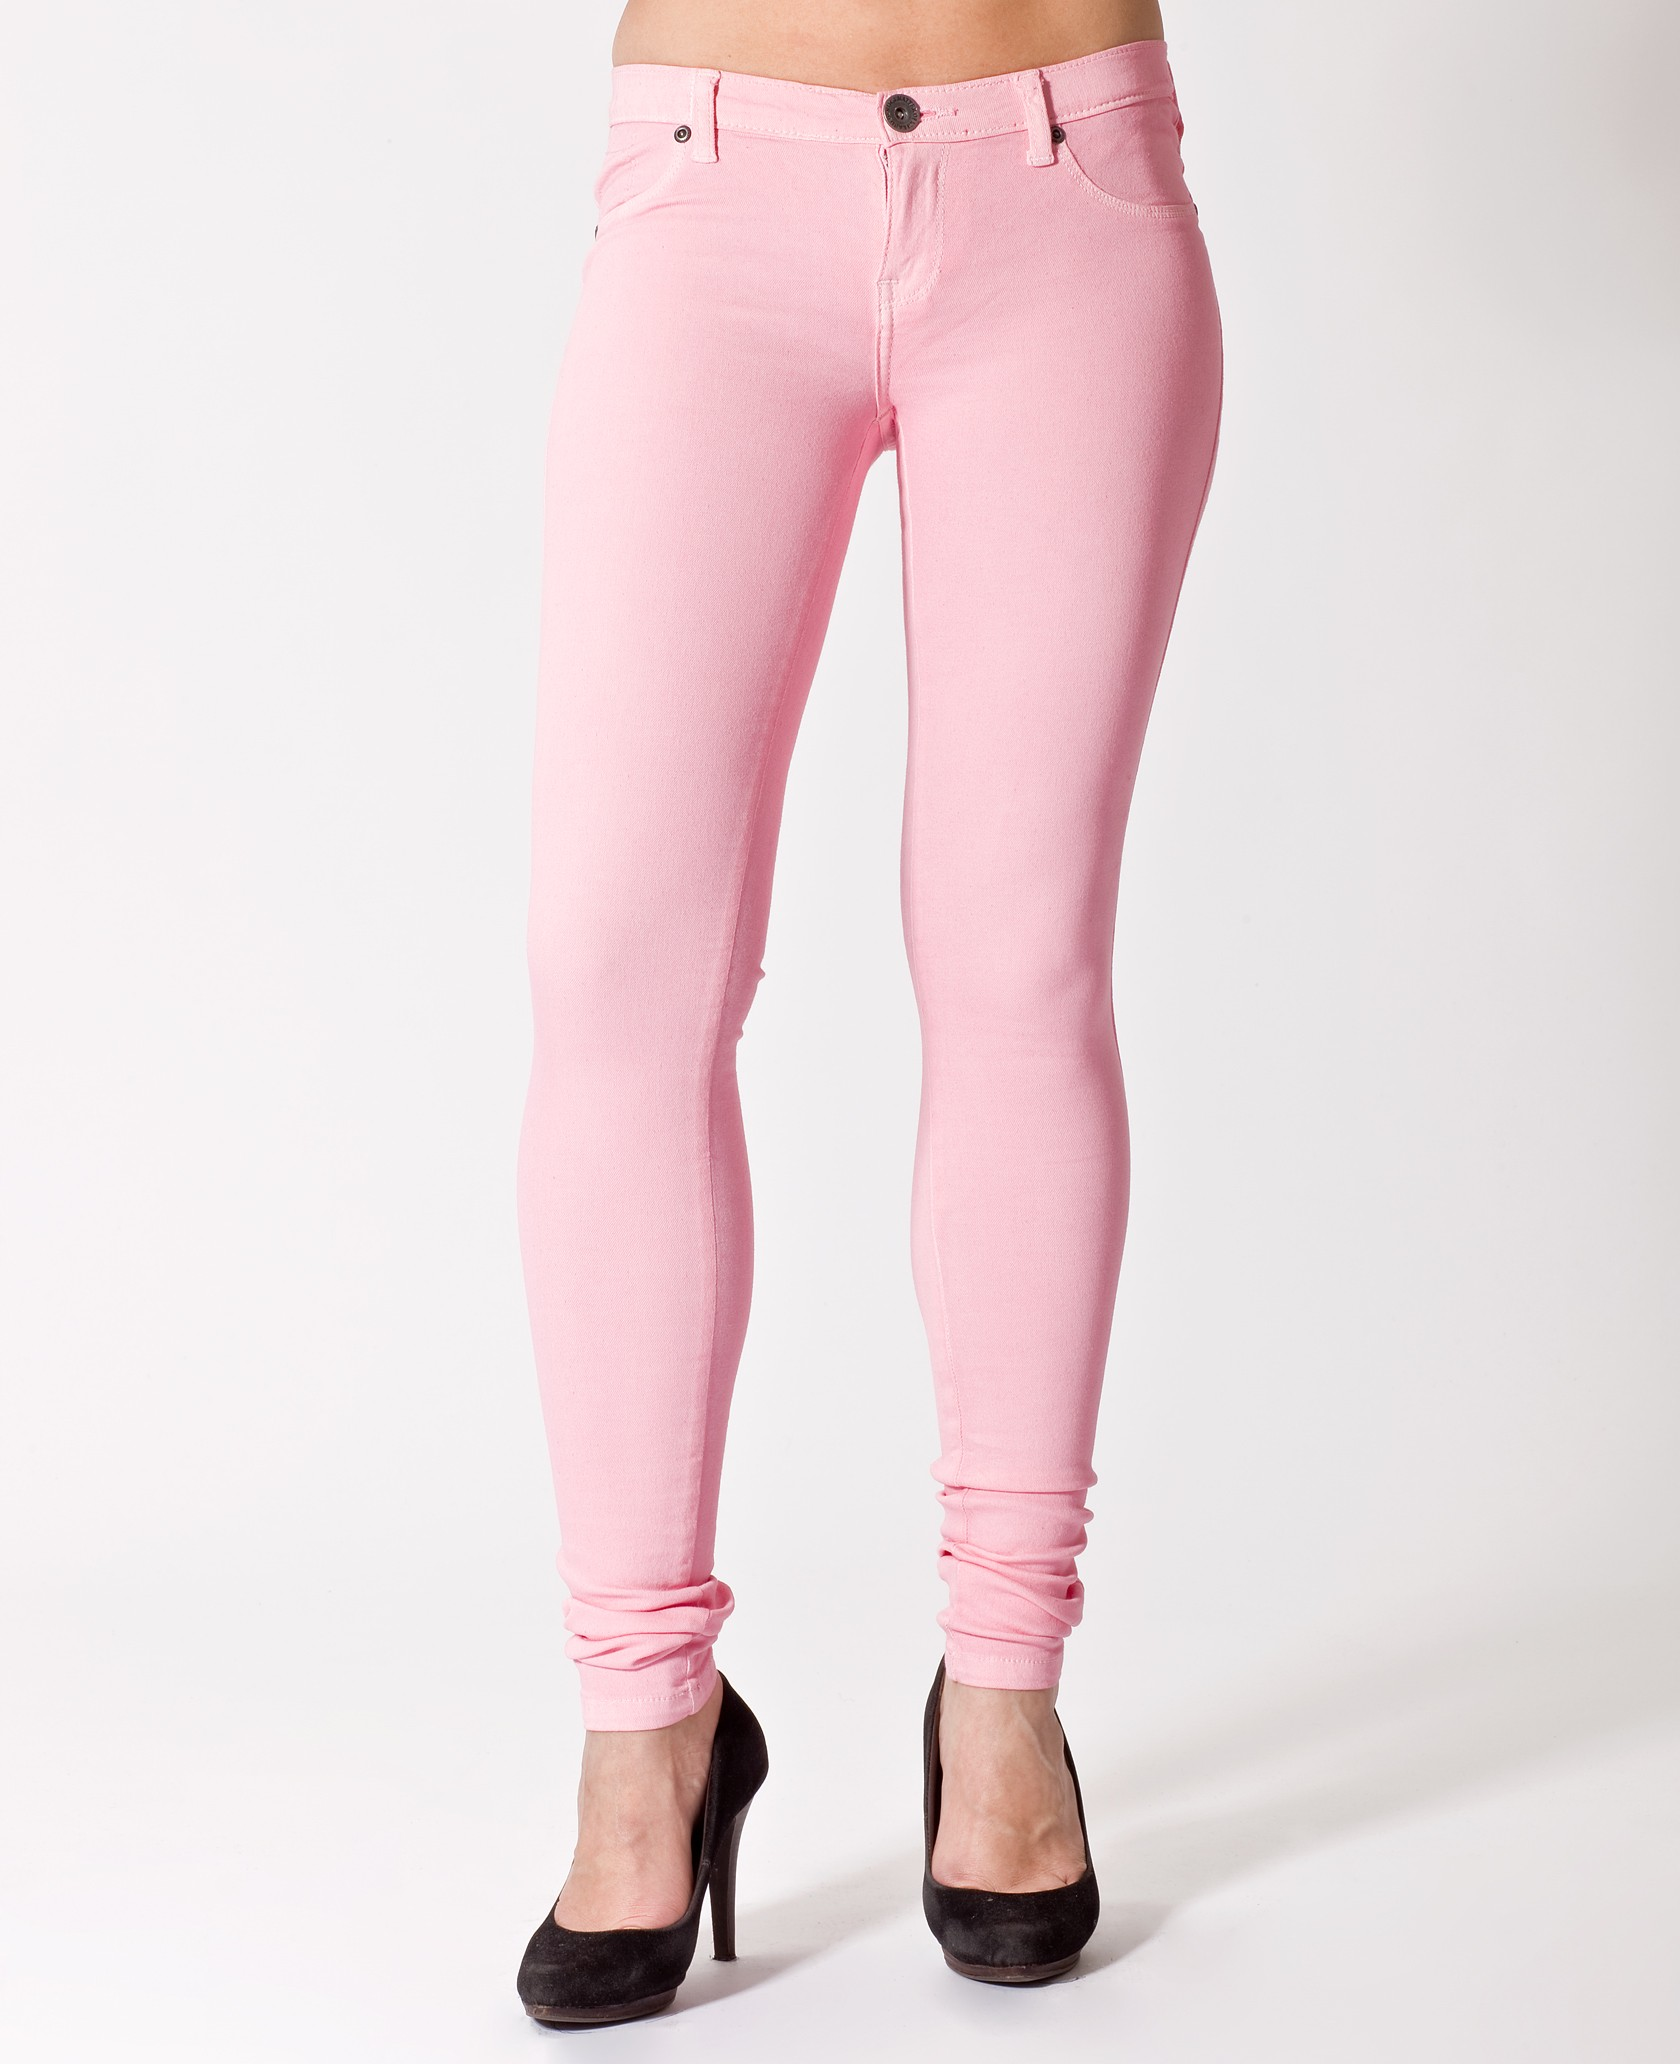 Kissy Dr Denim : en vente jegging rose pale (light pink) - Brandtrotters